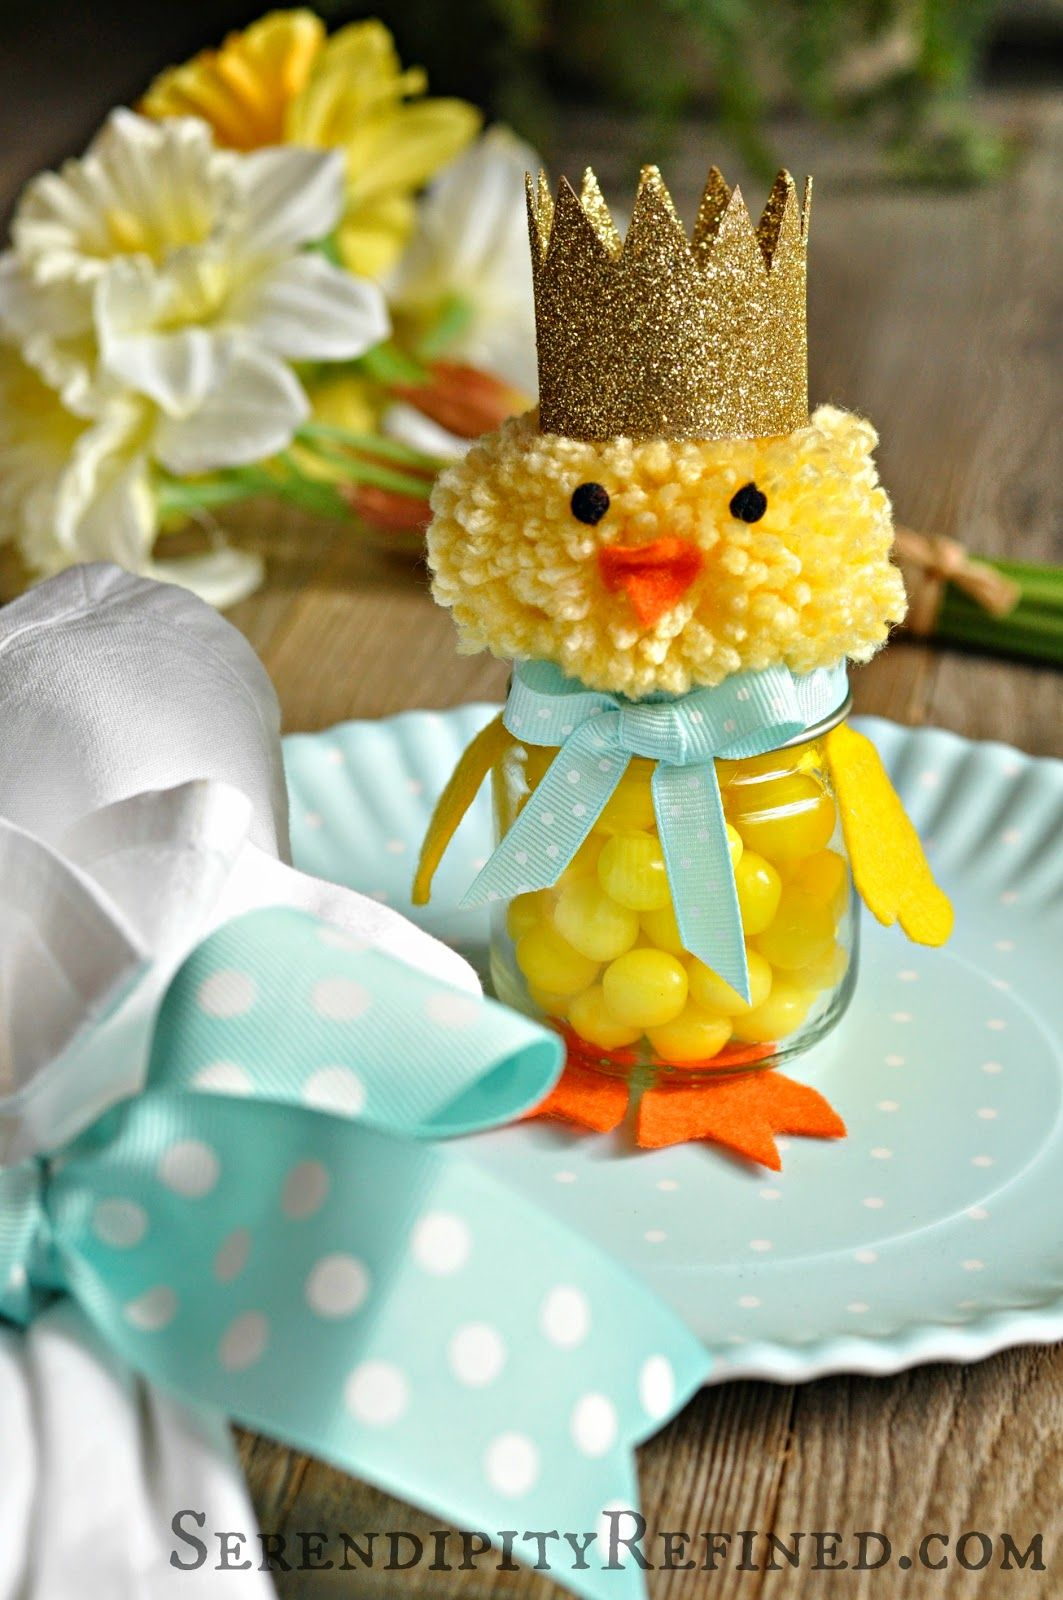 Serendipity refined blog recycled baby food jar easter for Baby food jar crafts pinterest